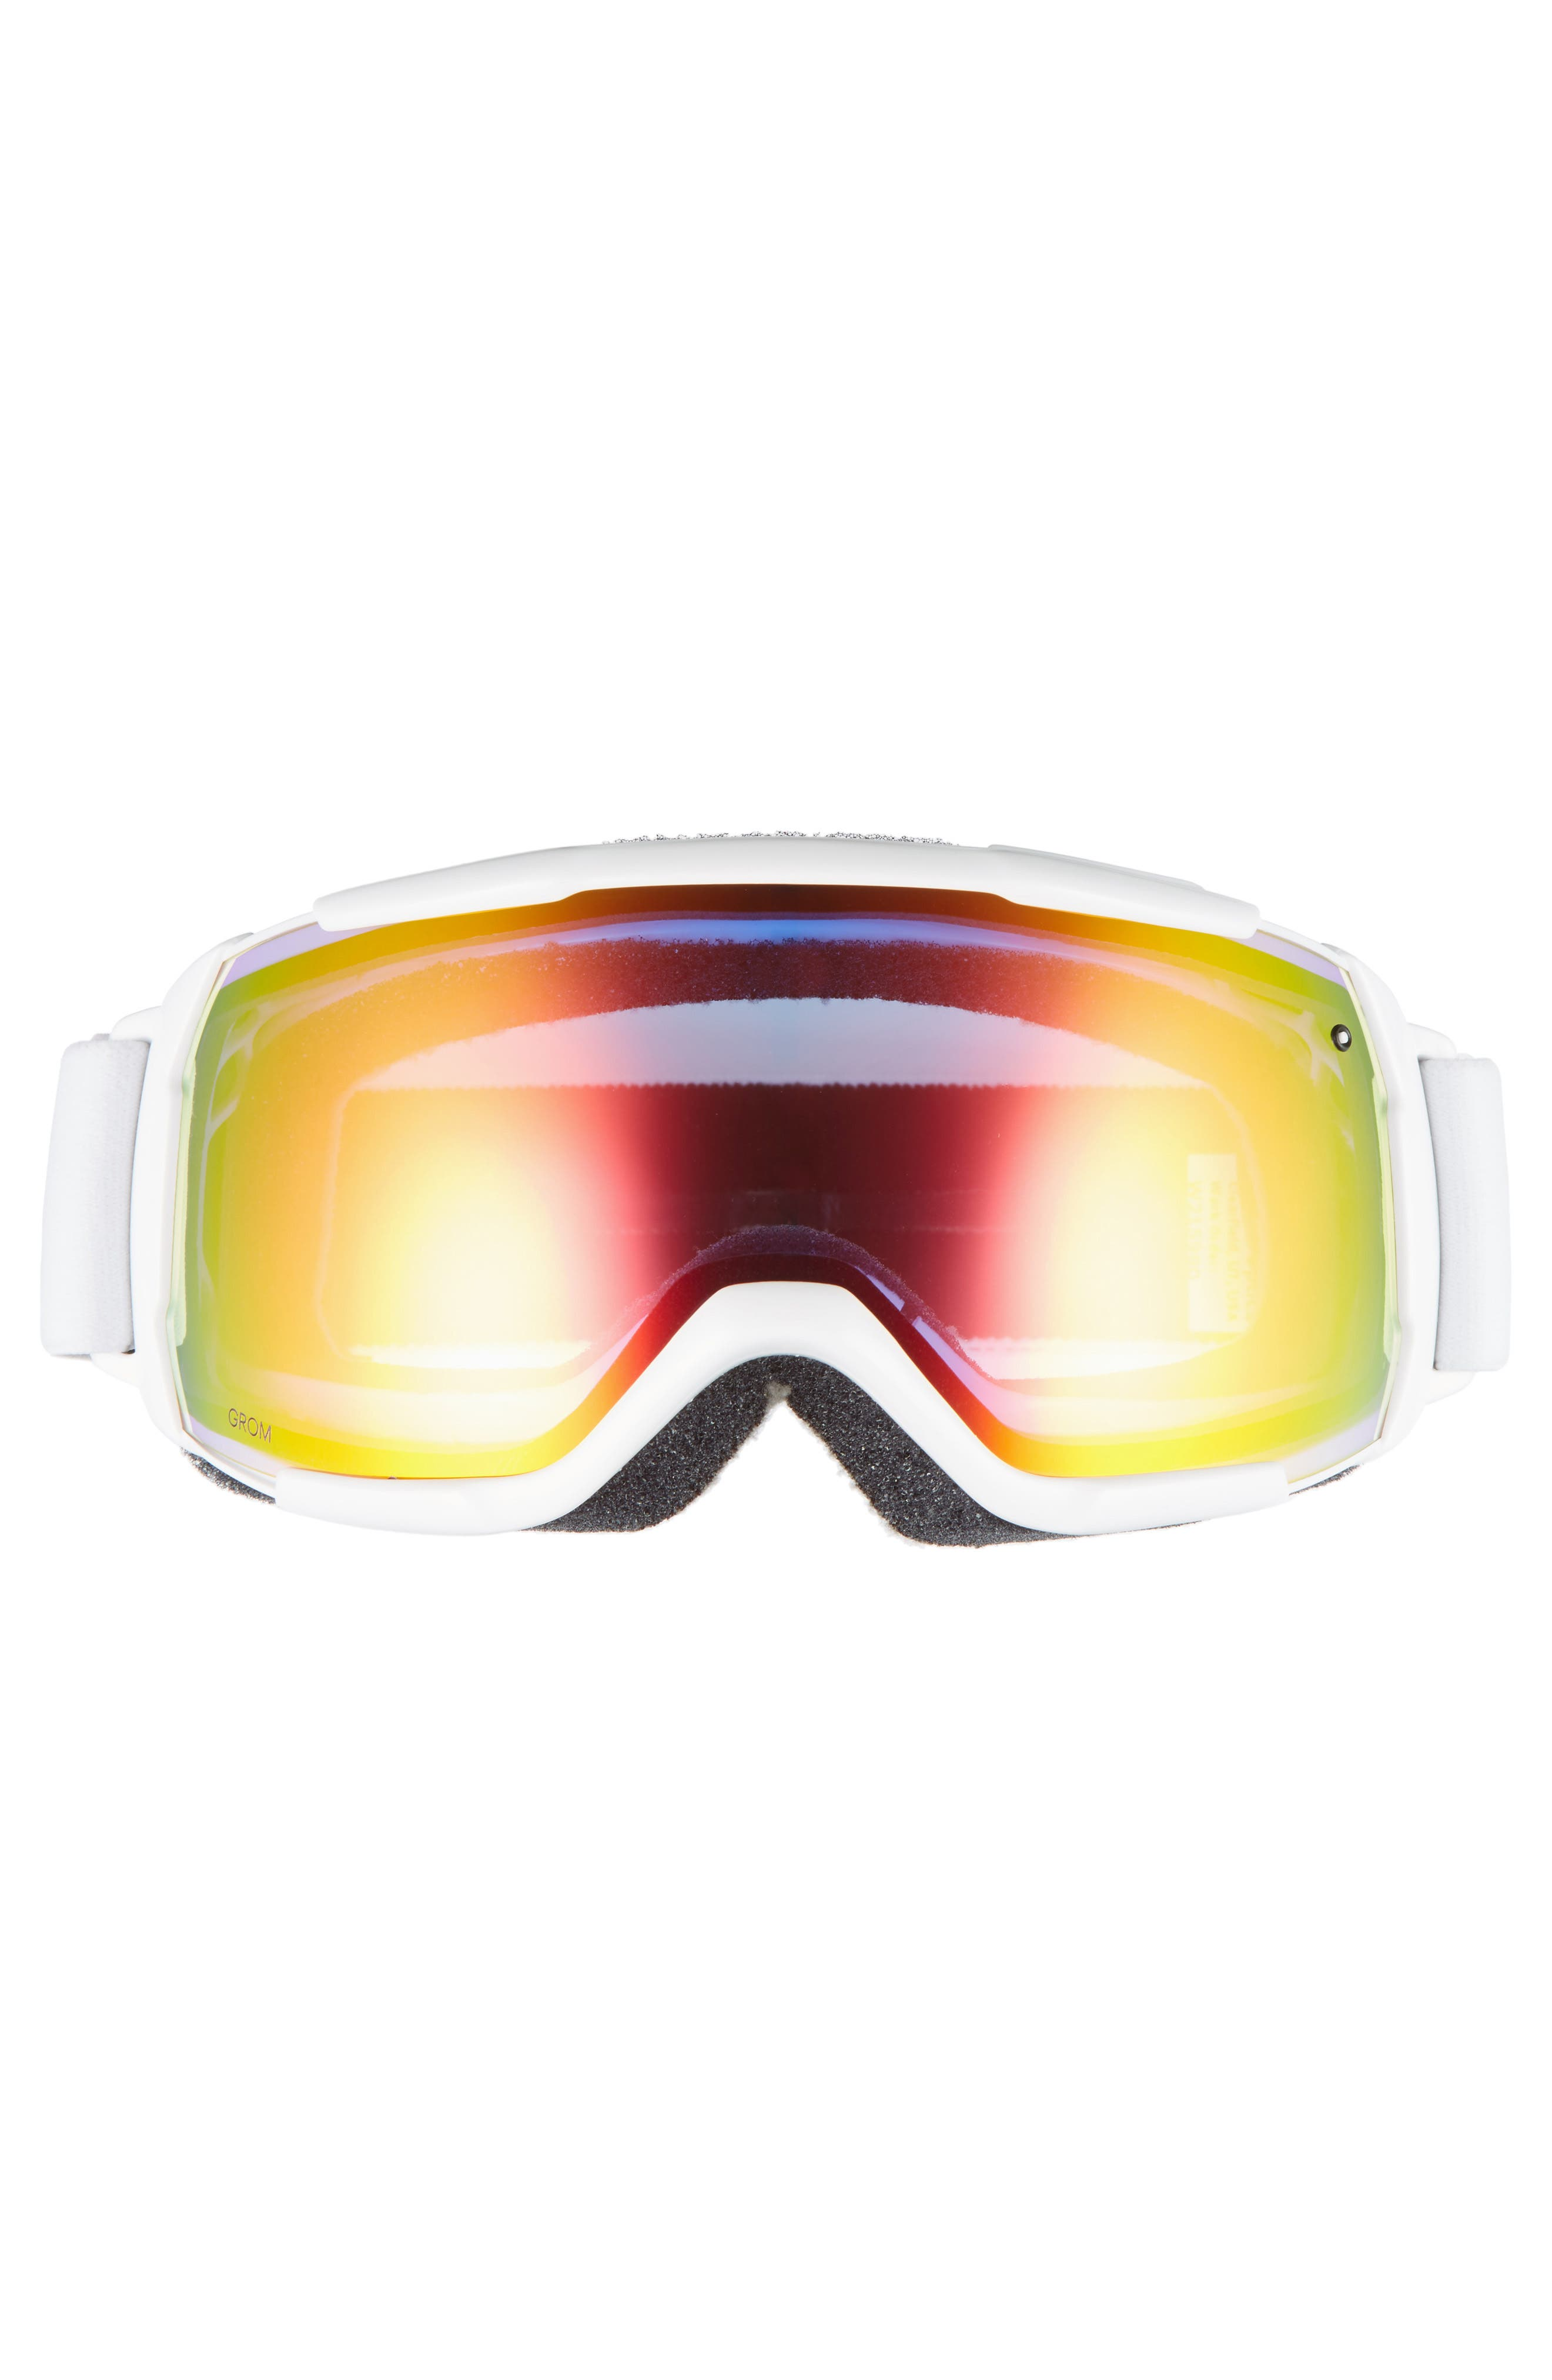 Grom Snow Goggles,                             Alternate thumbnail 10, color,